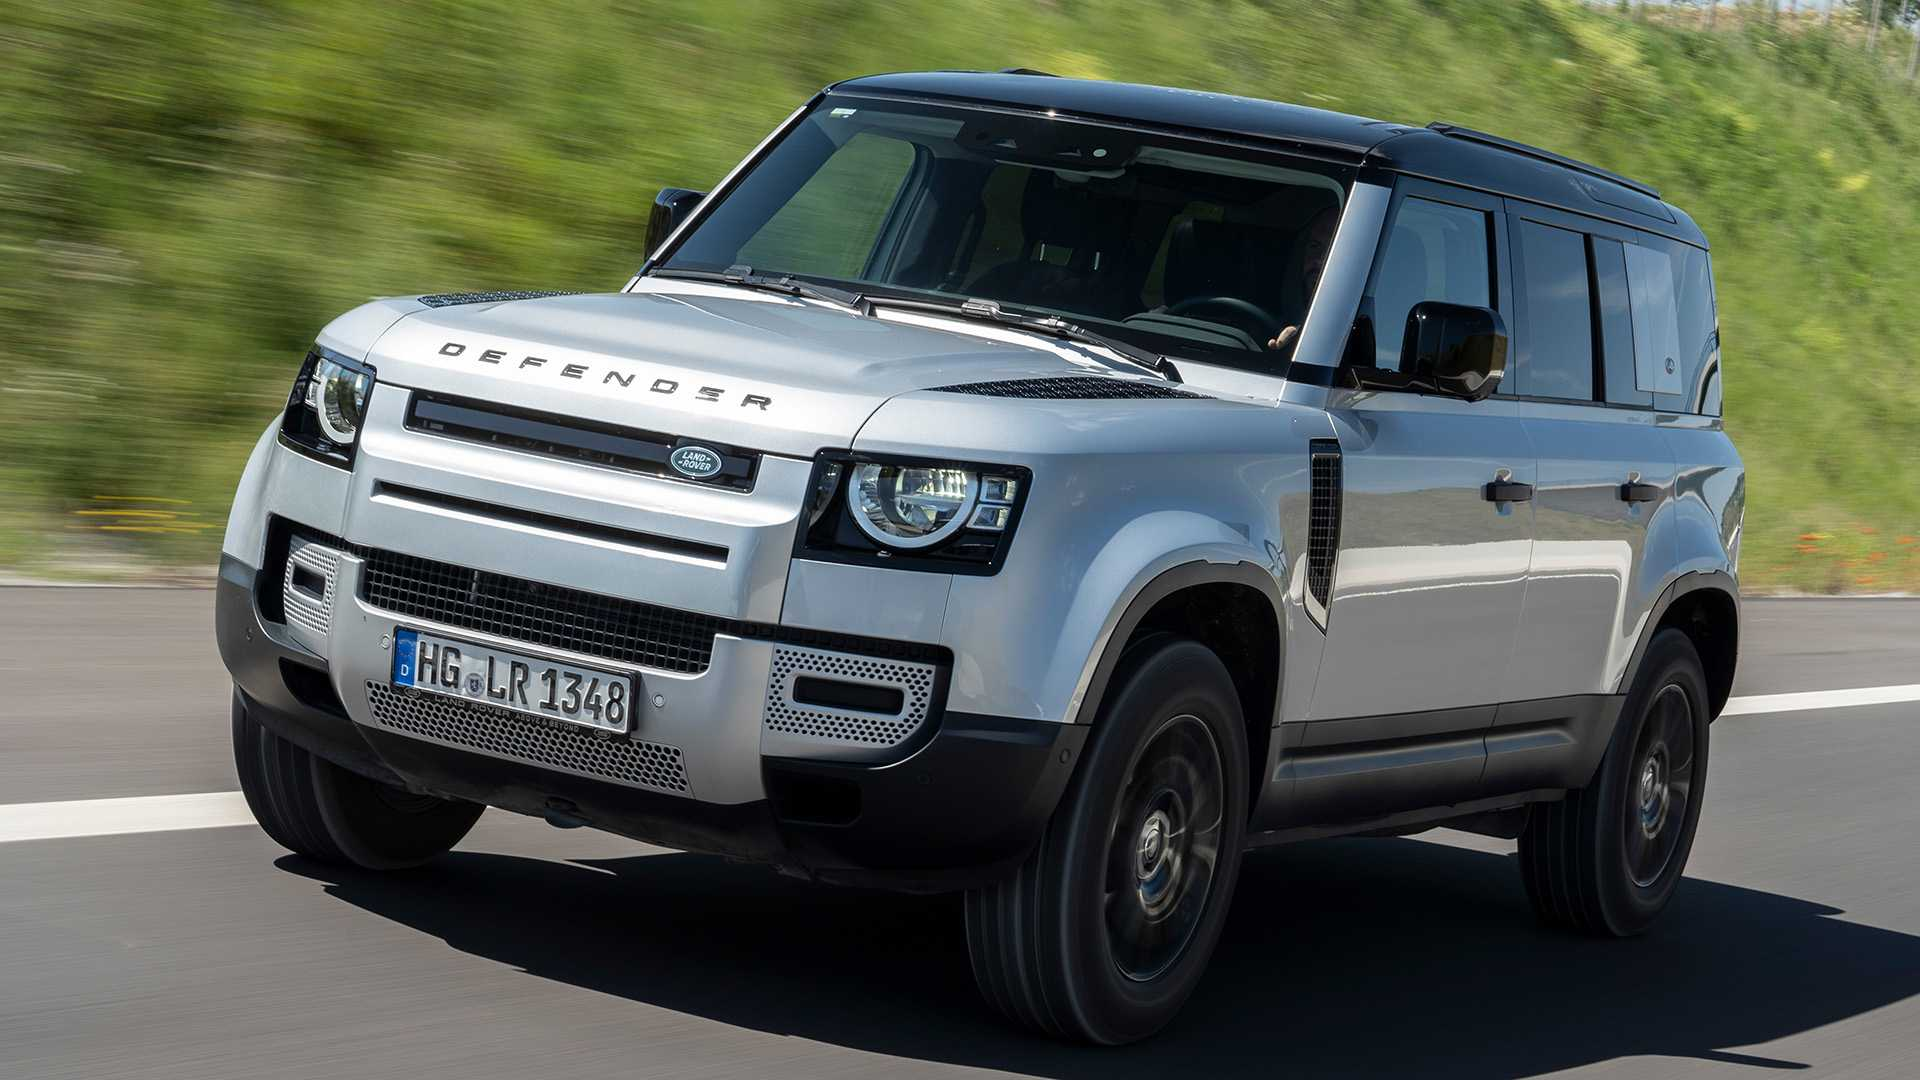 2020 Land Rover Defender Research New